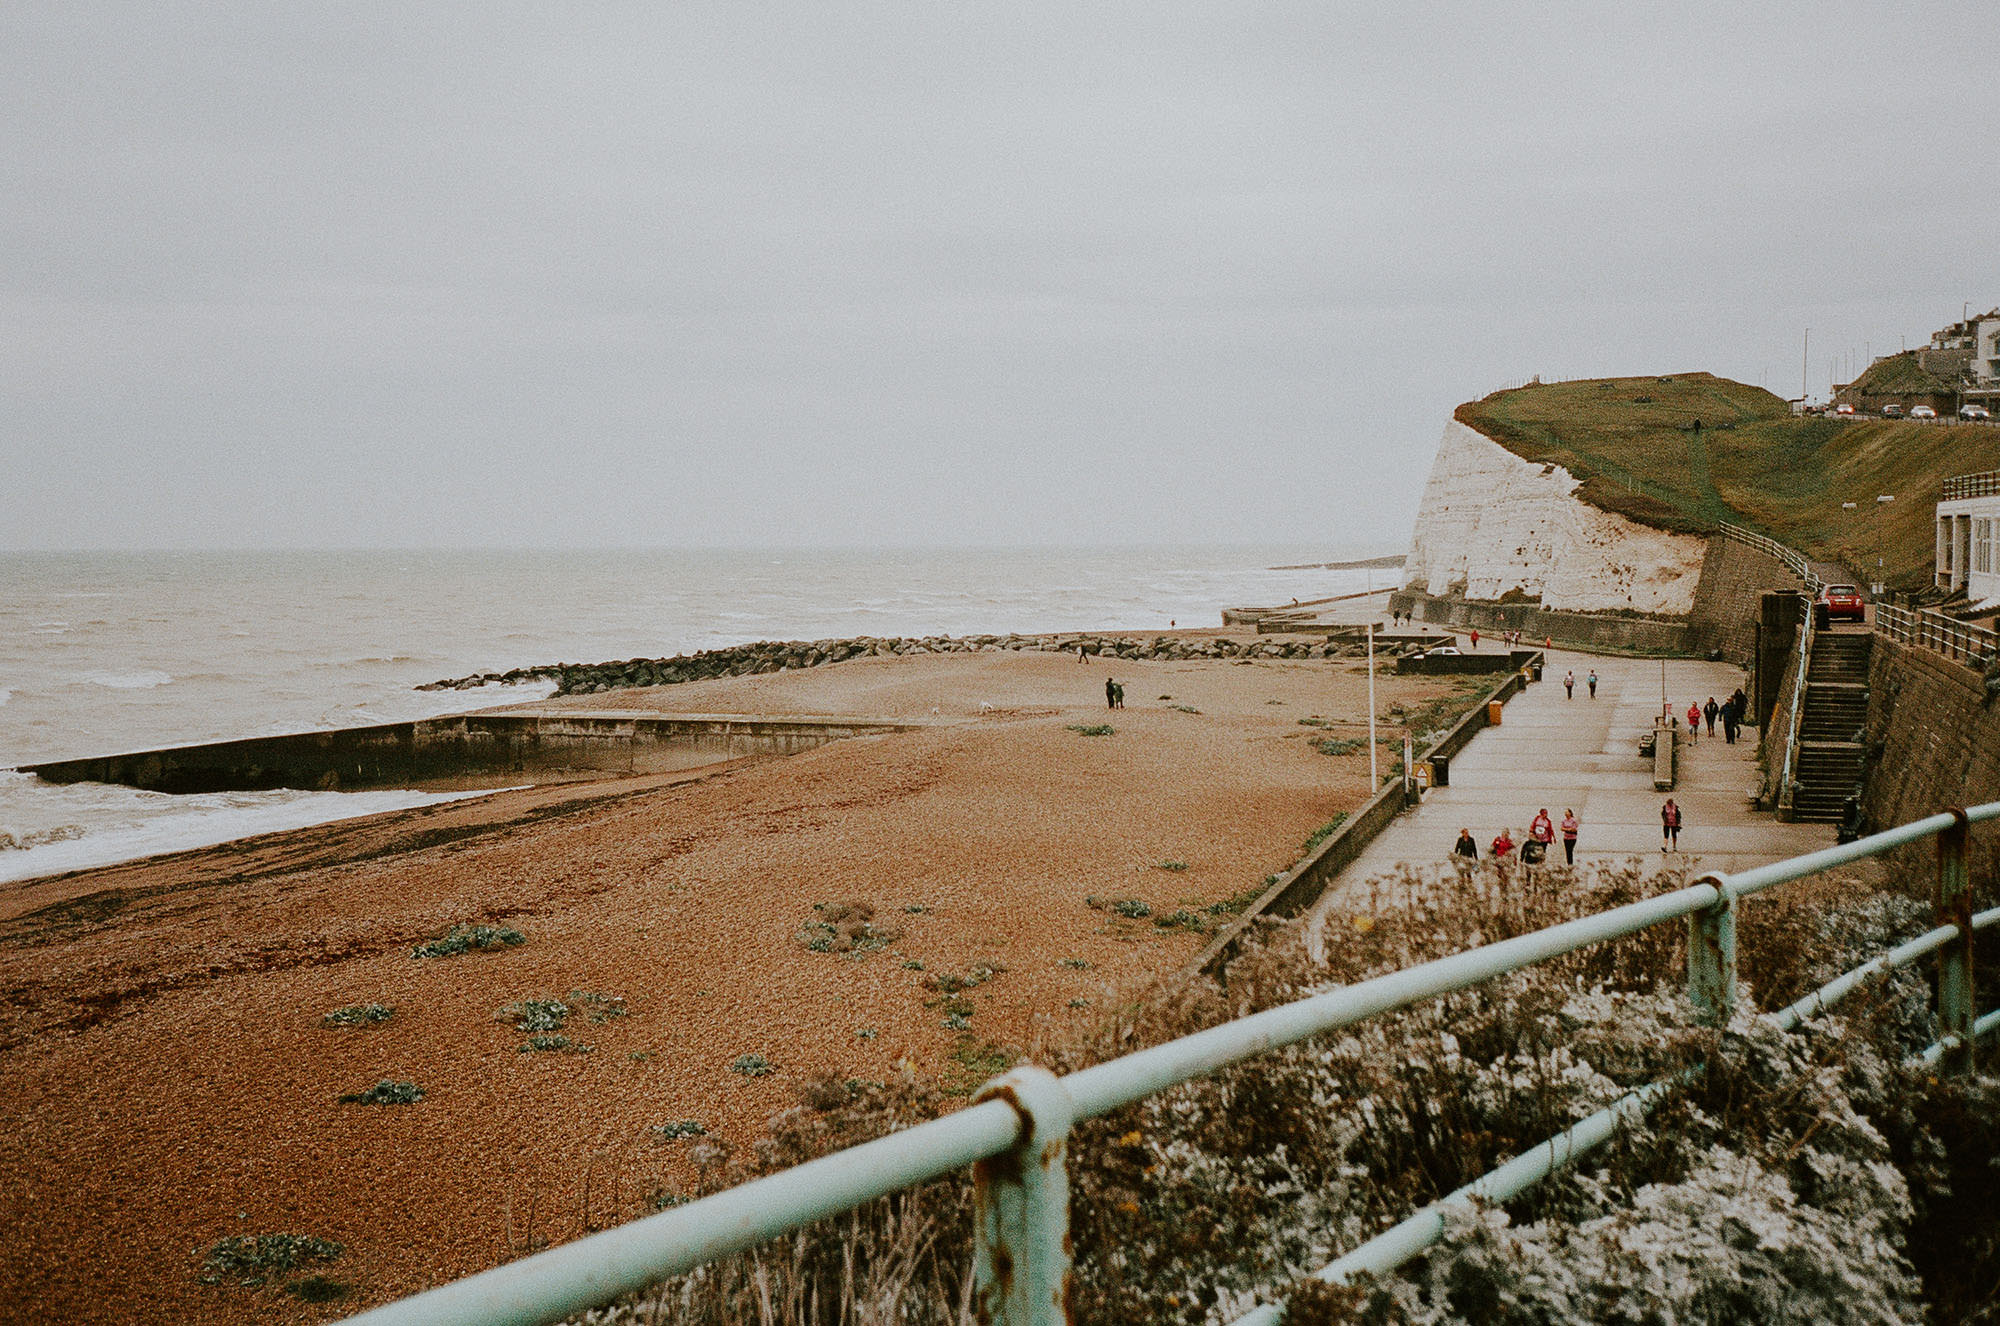 Analogue stories October photography